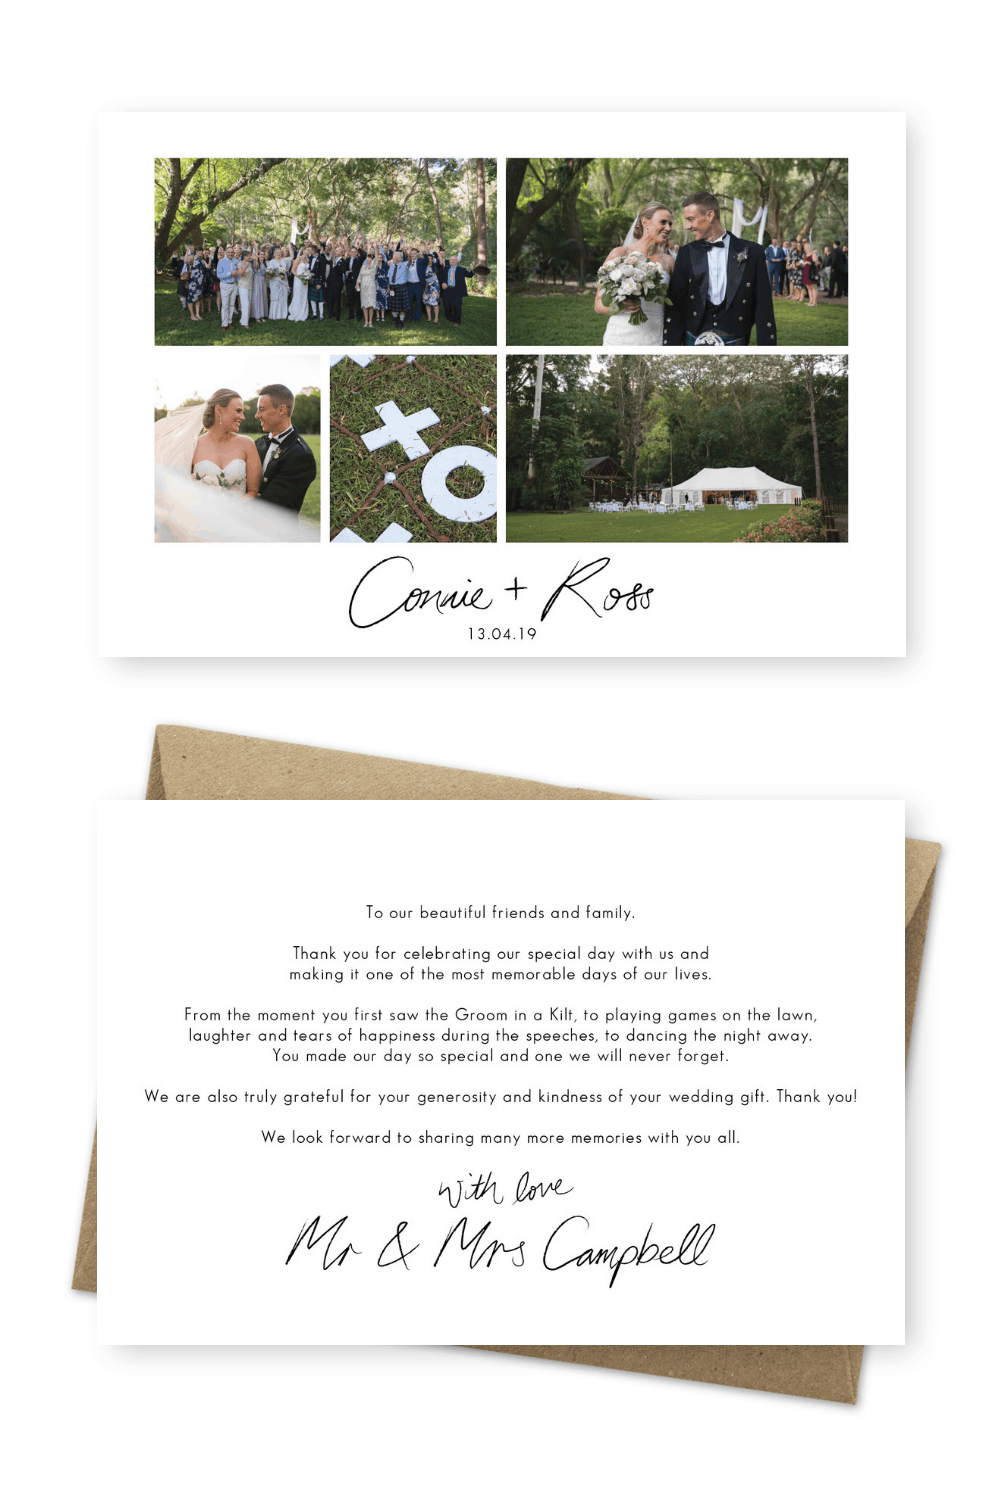 7 Wording Ideas For Your Wedding Thank